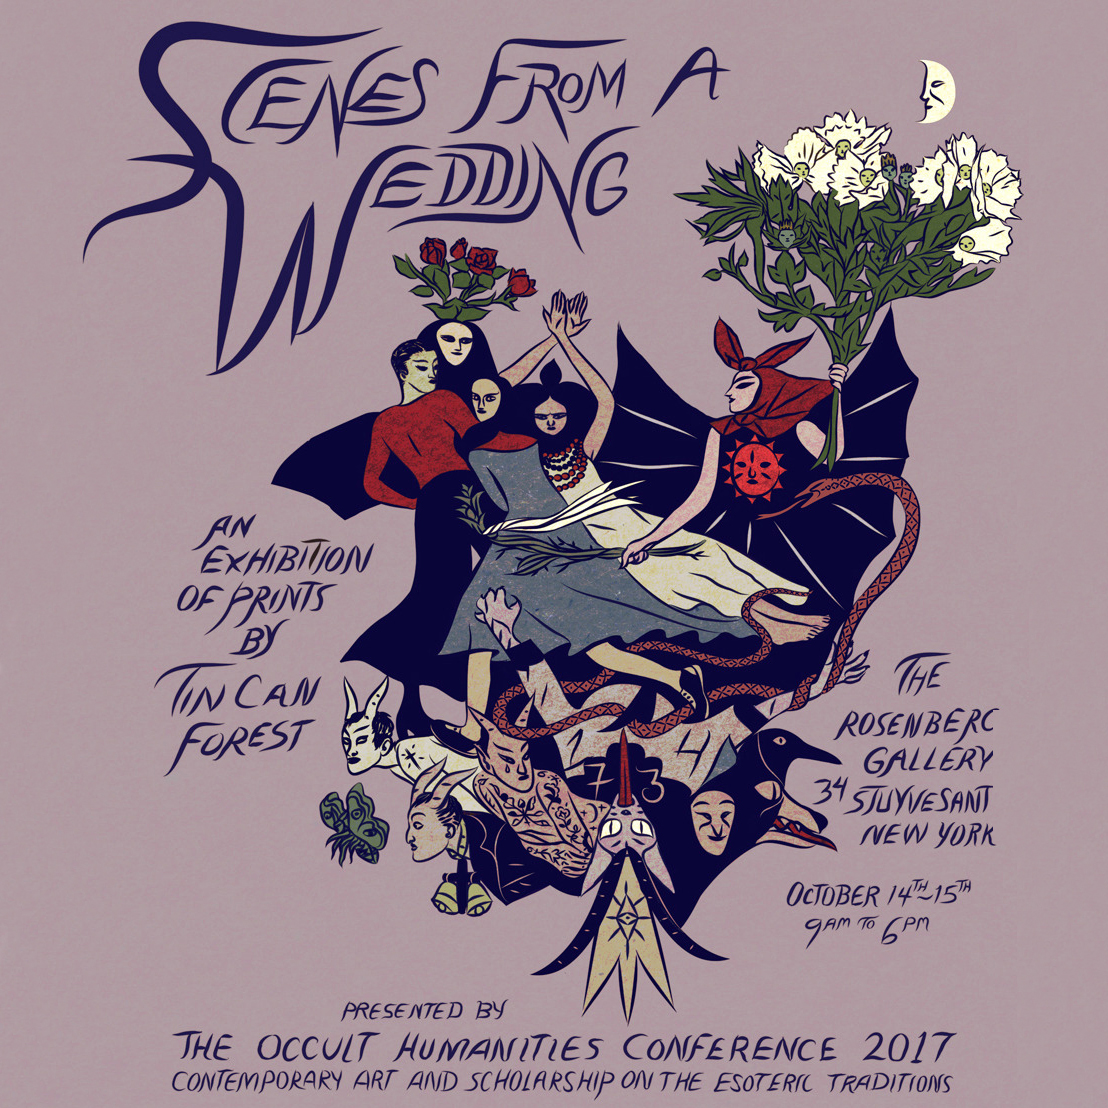 Scenes_from_A_Wedding_poster_6_TinCanForest-1.jpg